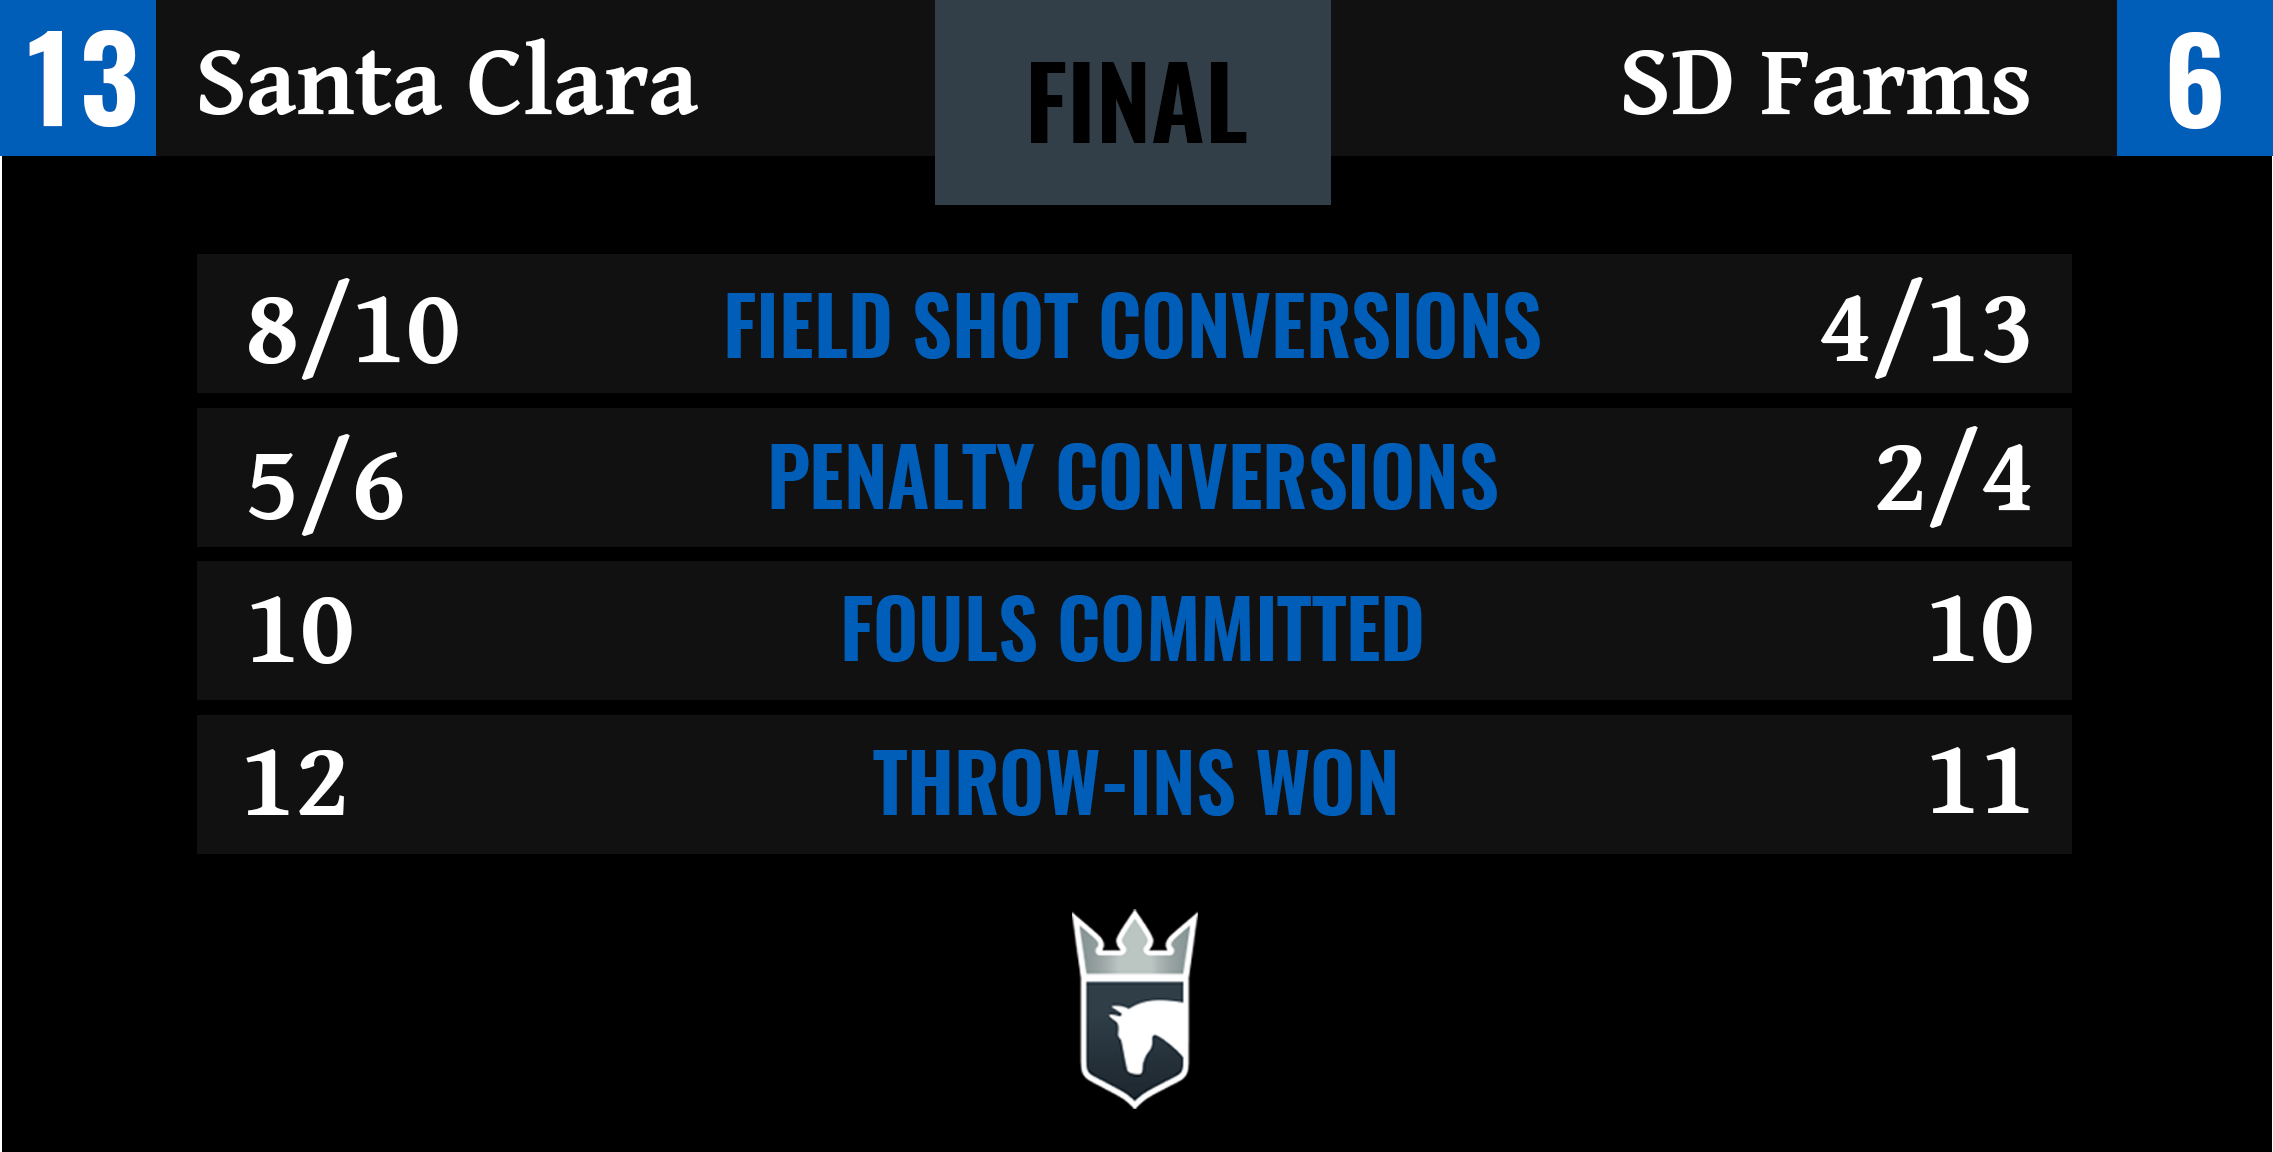 Santa Clara vs SD Farms Final Stats